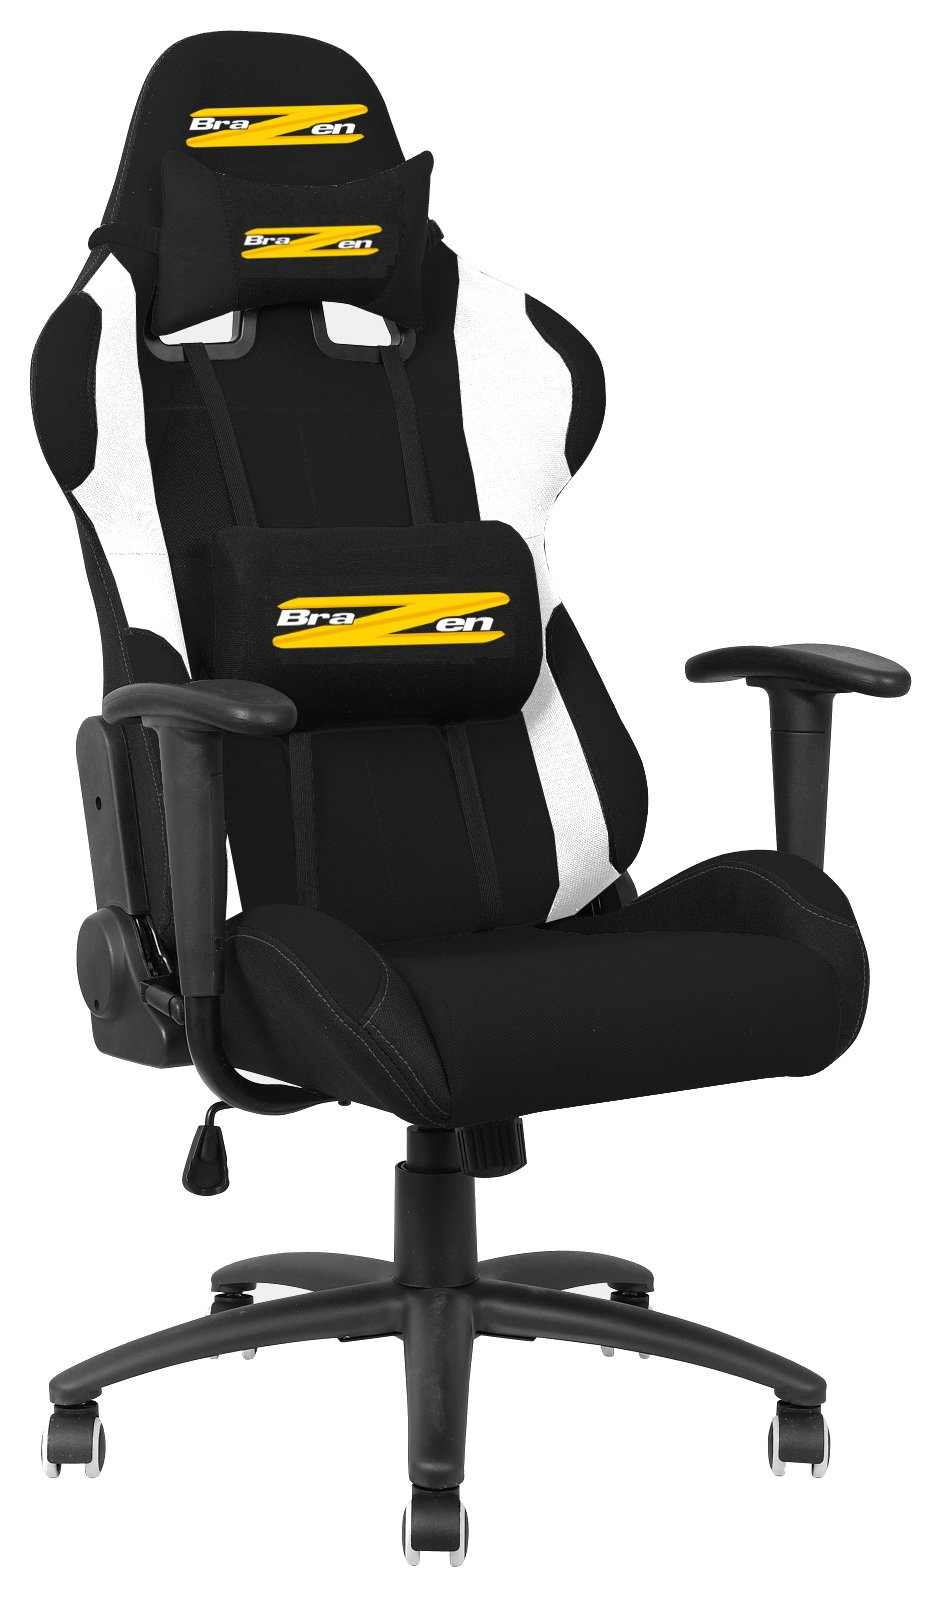 pro gaming chairs uk cheap racing chair brazen shadow black 5809127 argos price tracker pricehistory co